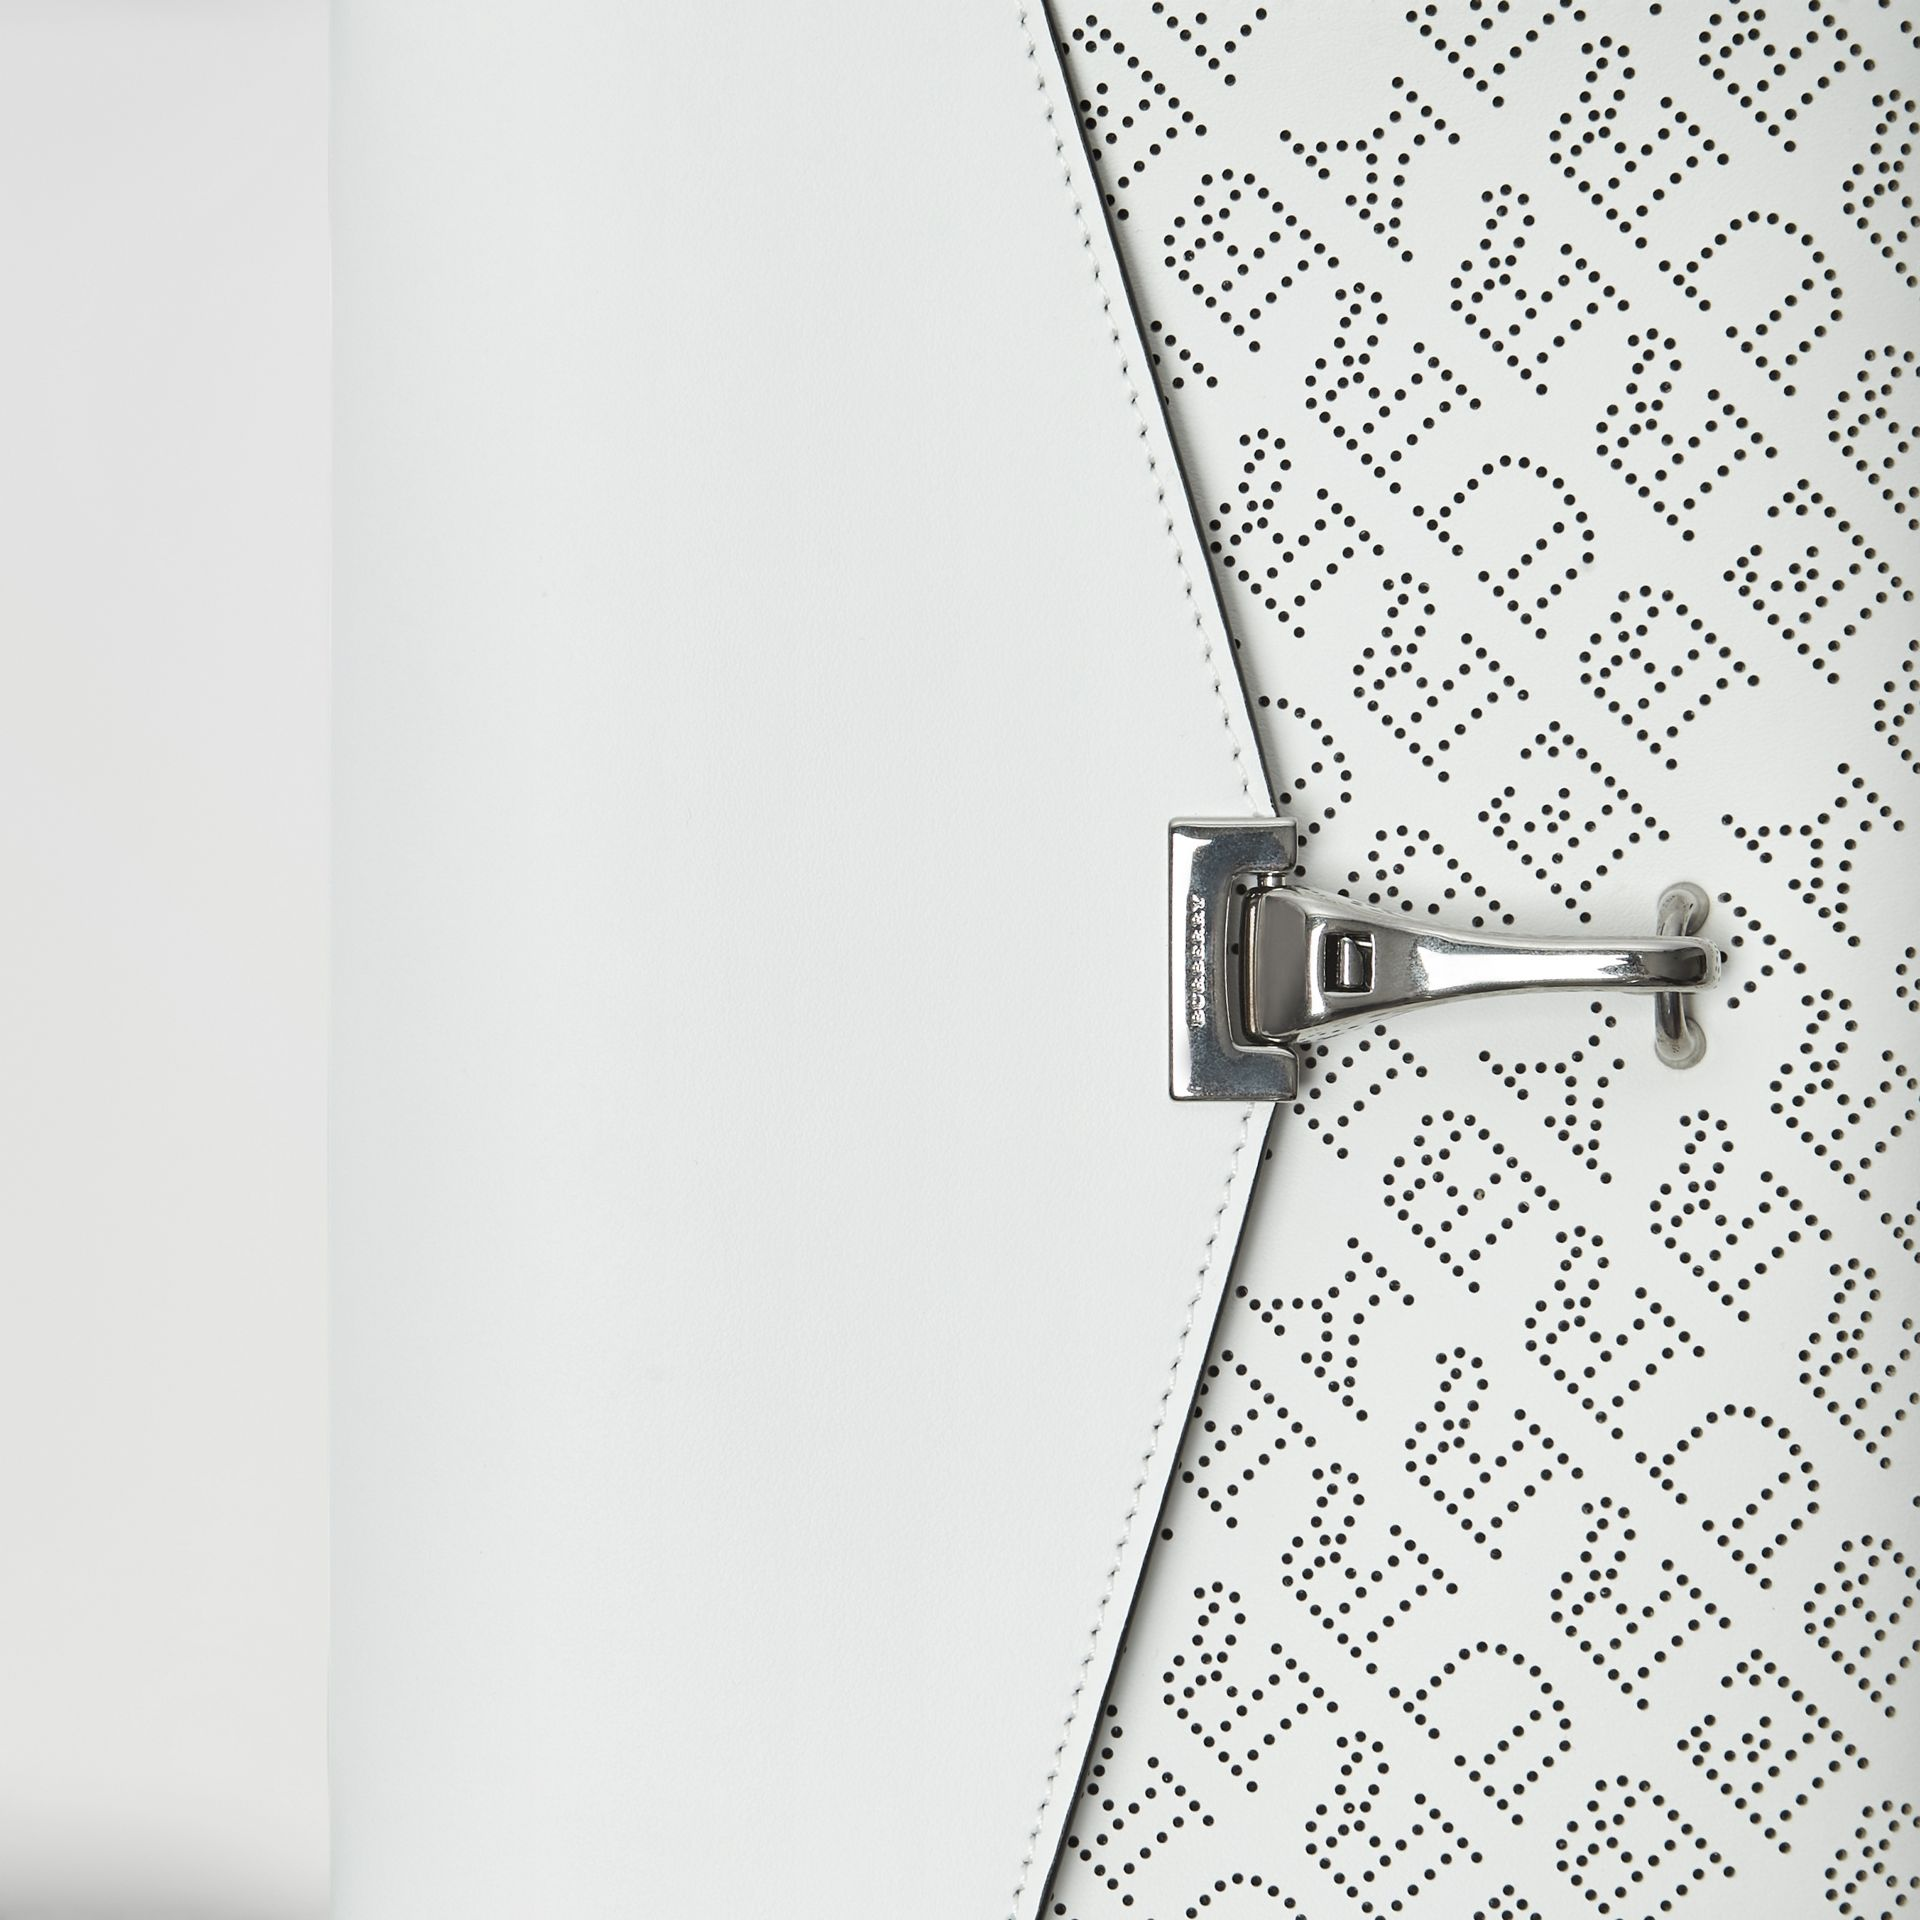 Small Perforated Logo Leather Crossbody Bag in Chalk White - Women | Burberry - gallery image 1